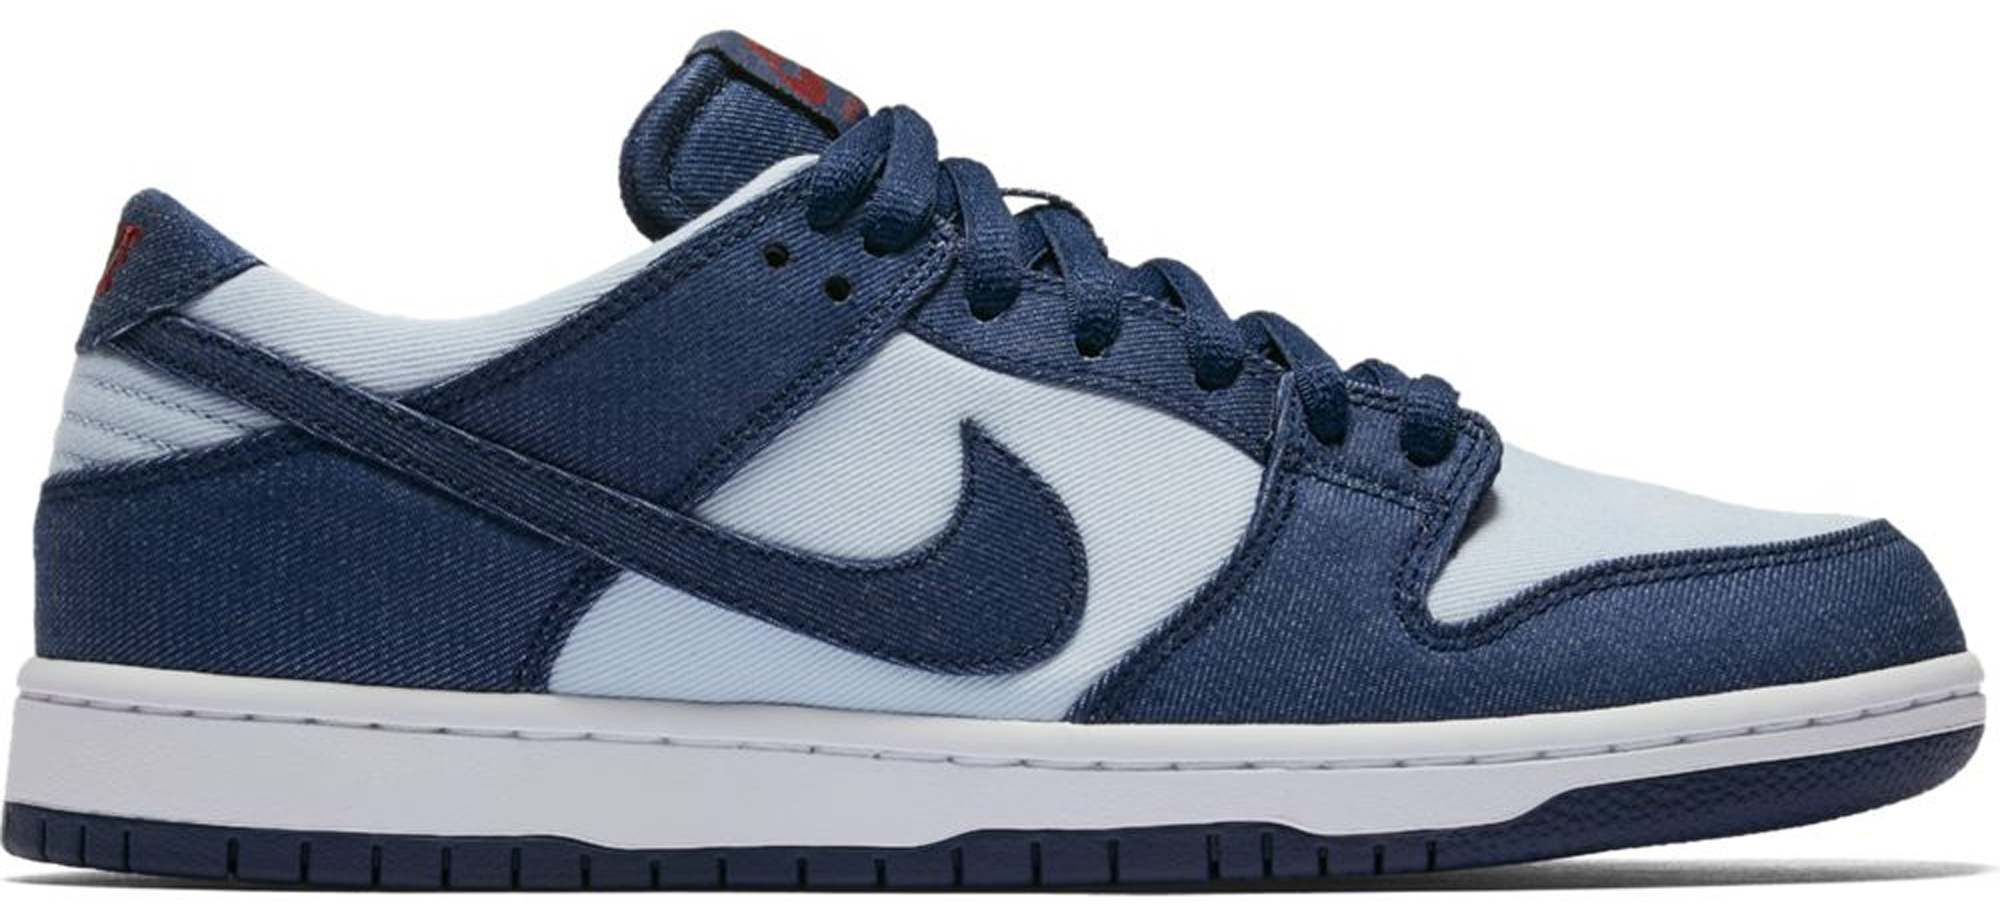 Nike SB Dunk Low Binary Blue